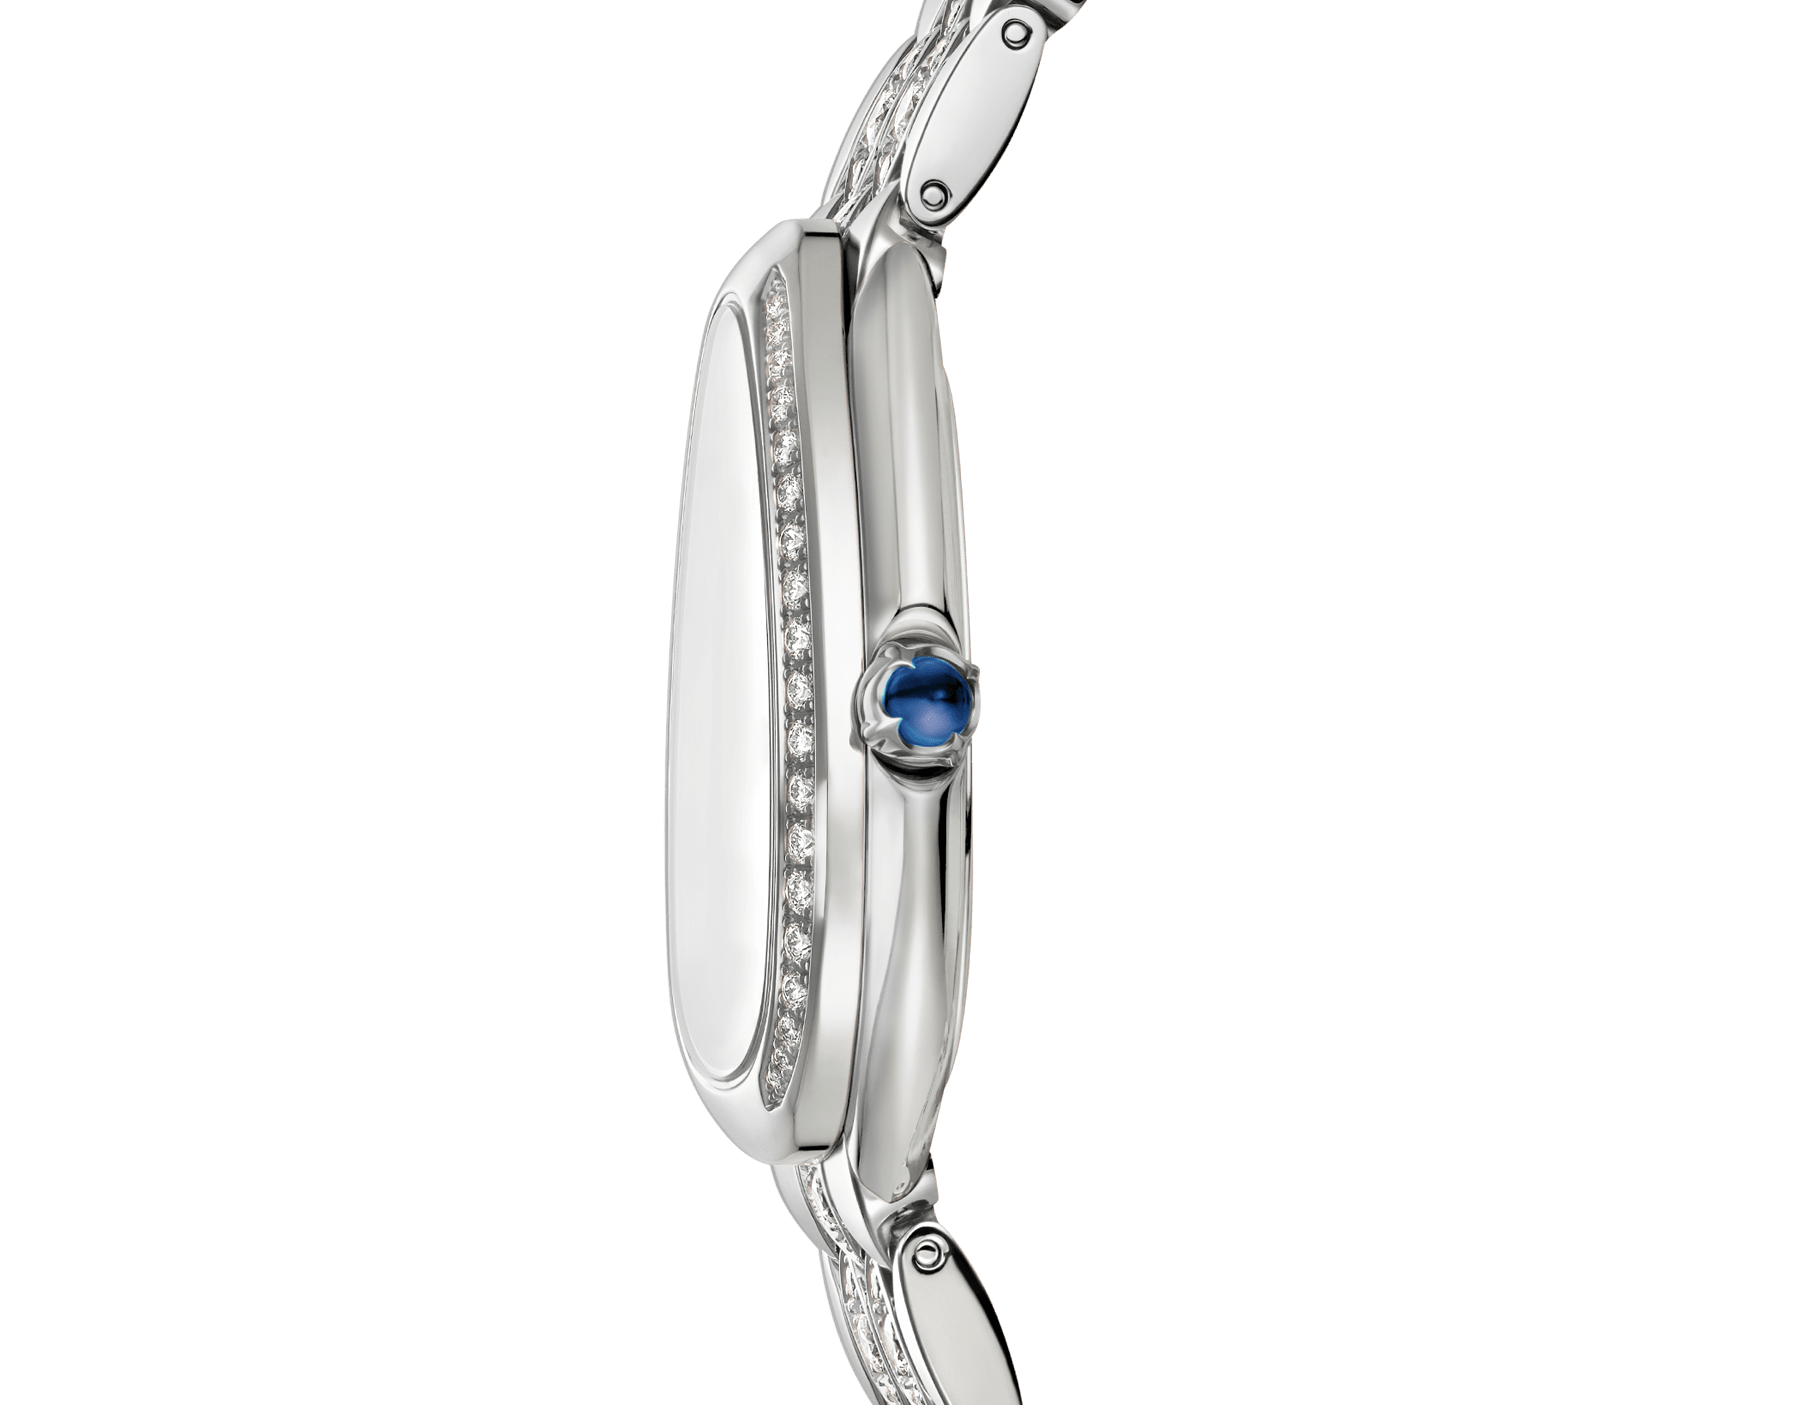 Serpenti Seduttori watch with 18 kt white gold case and bracelet both set with diamonds, and silver opaline dial 103276 image 3